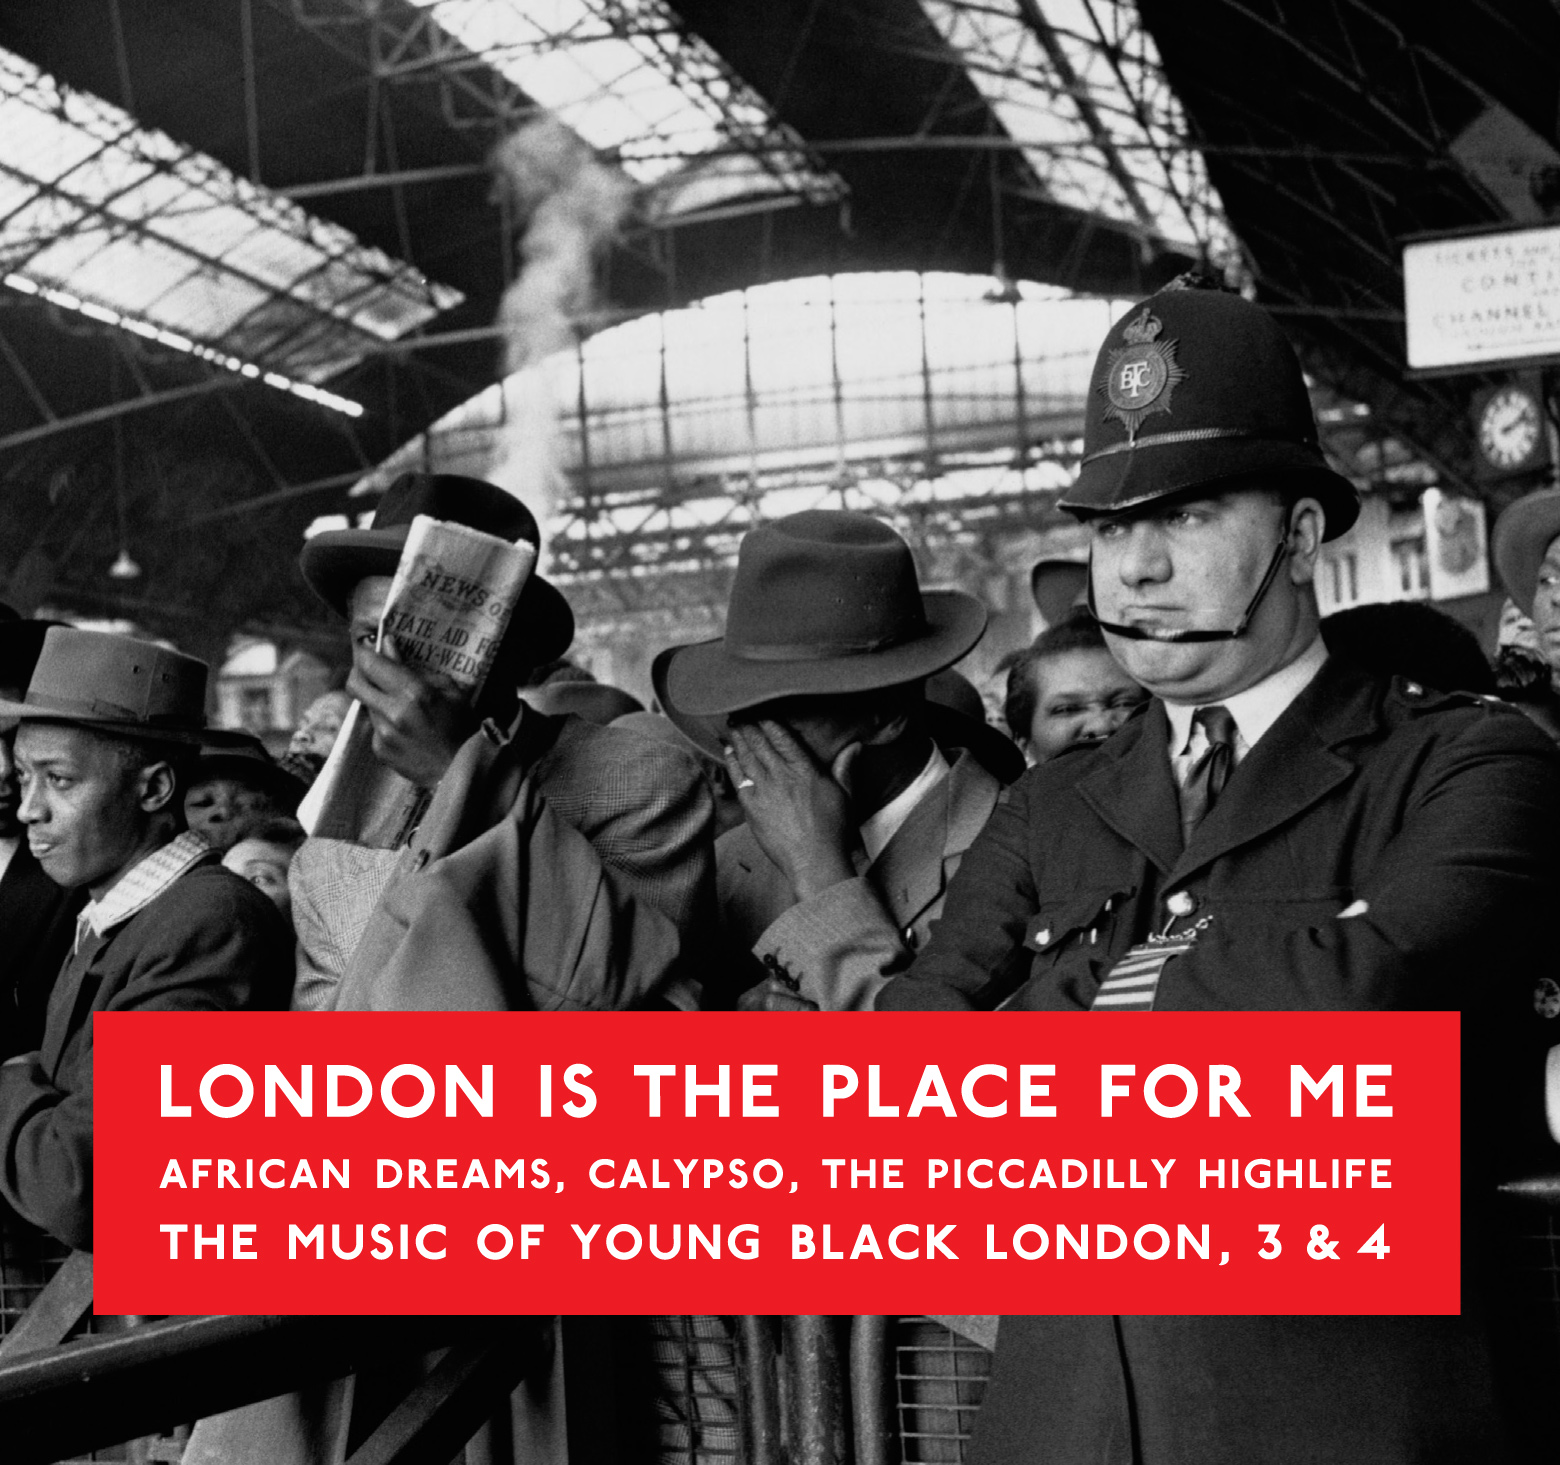 London Is The Place For Me 3 And 4: African Dreams, Calypso, The Piccadilly Highlife